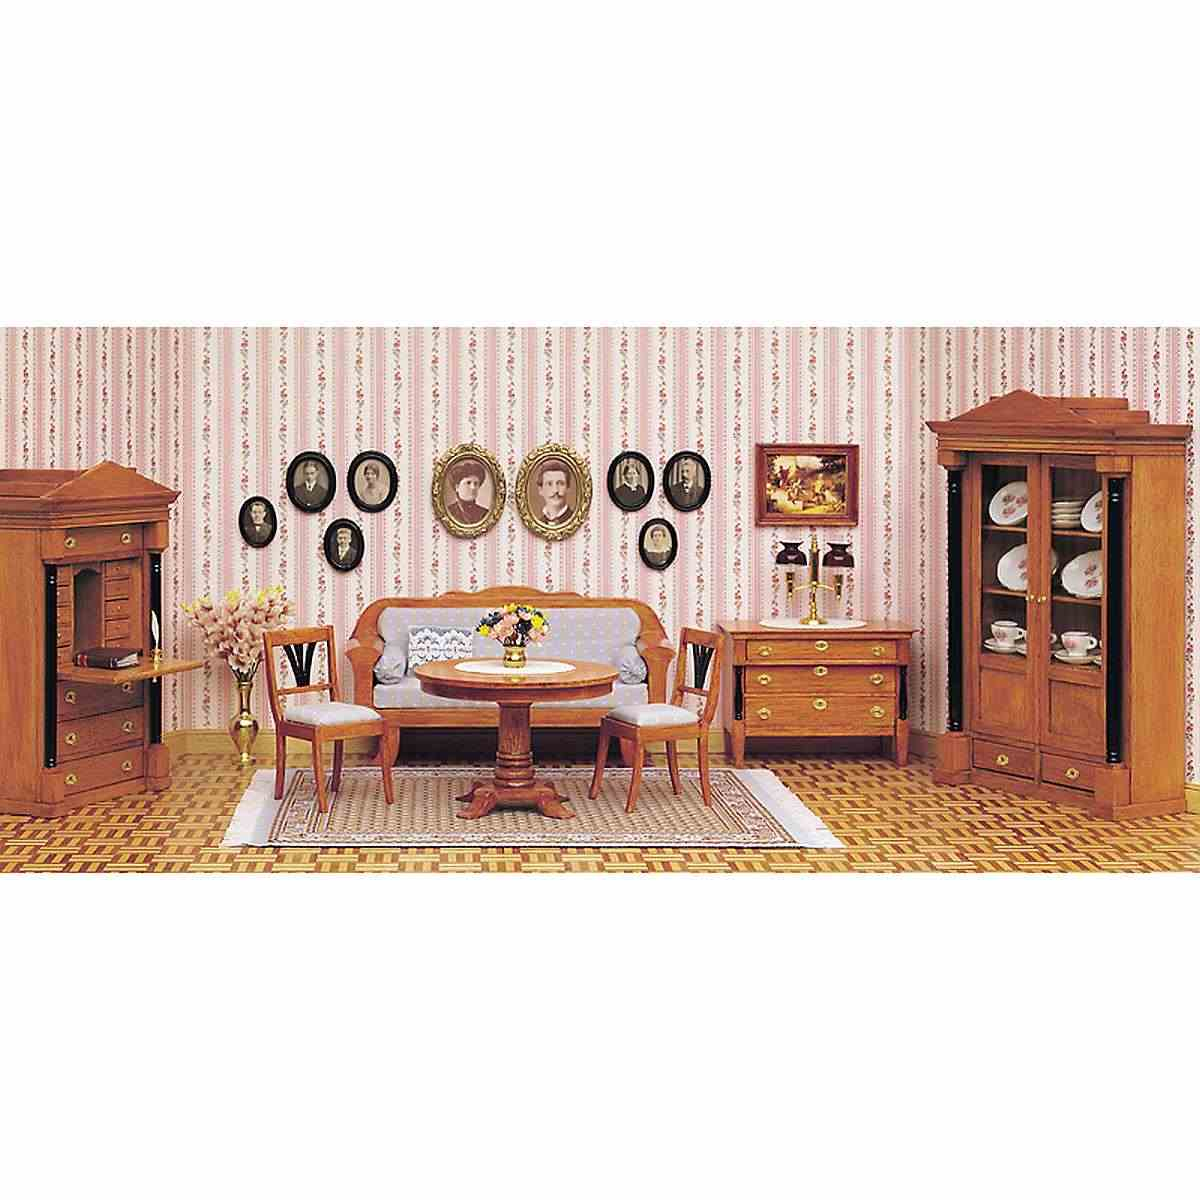 Complete set – Biedermeier room